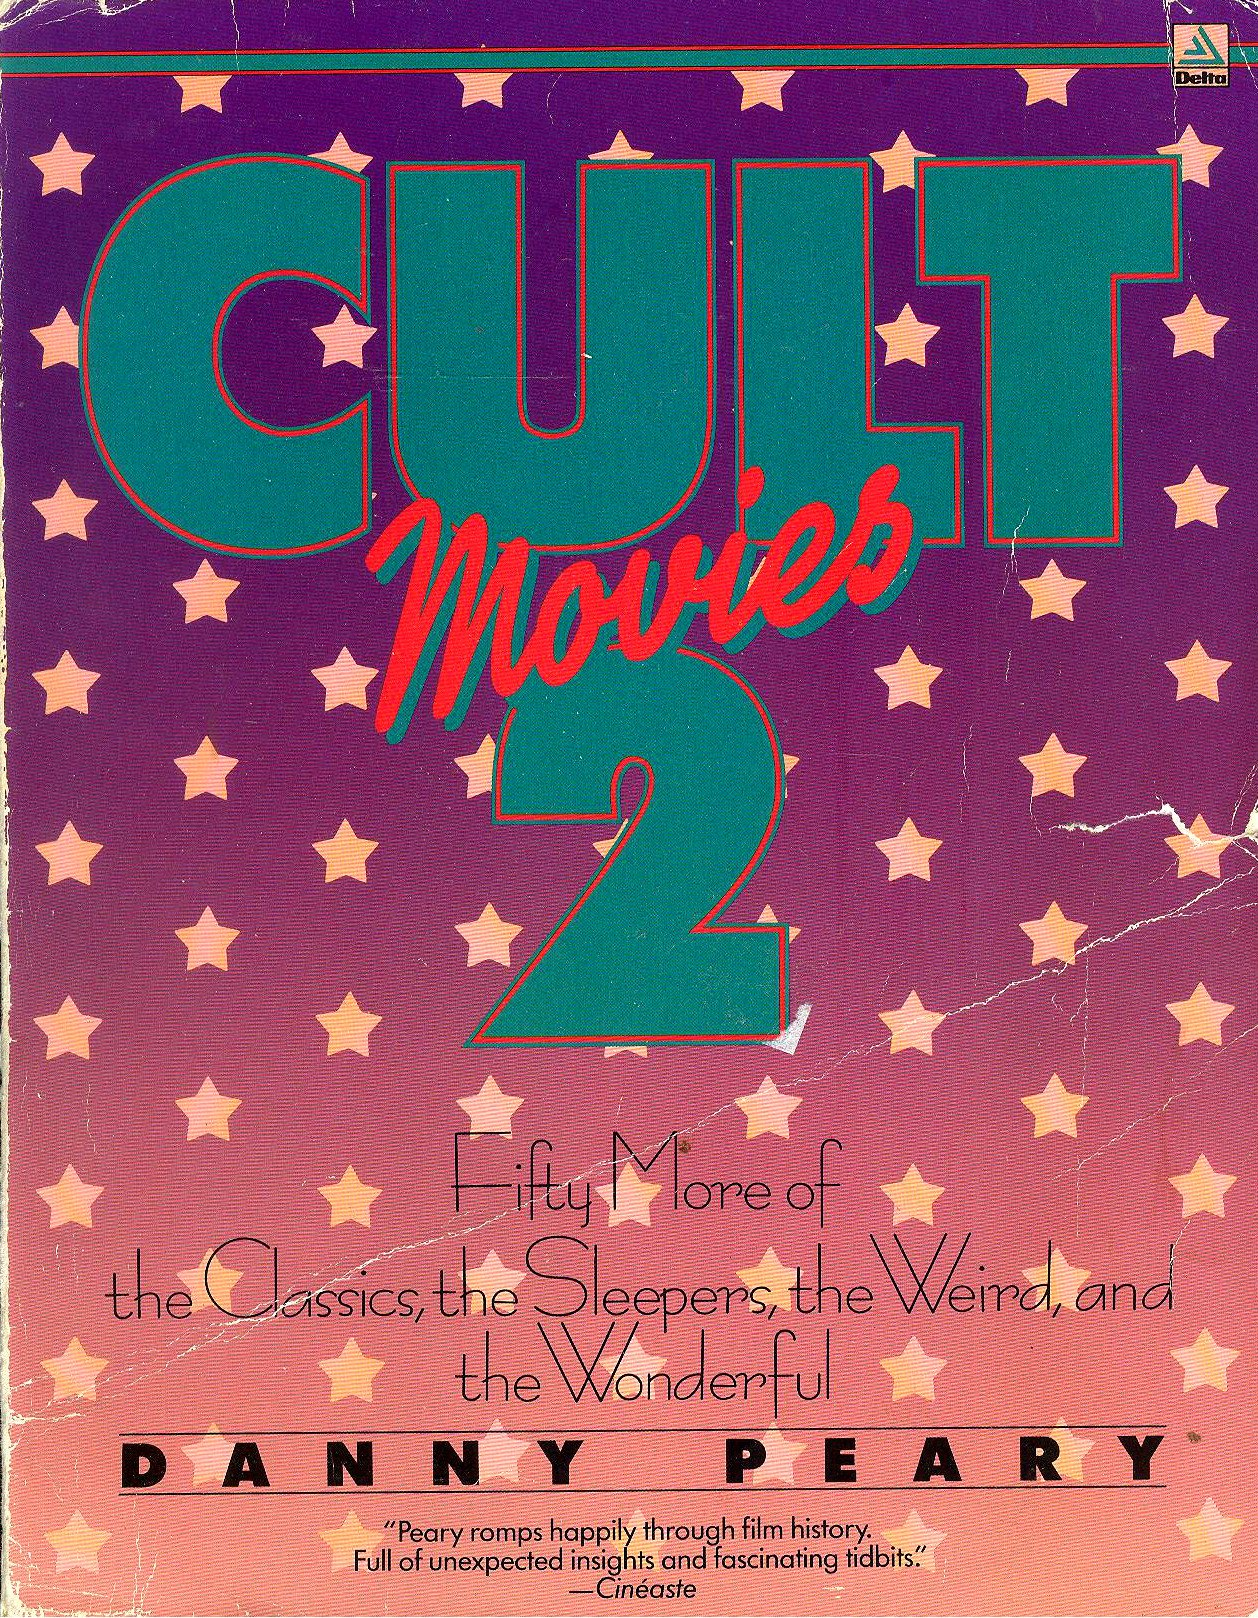 Cult Movies, Volumes 1 & 2, and beyond (1981-2014)